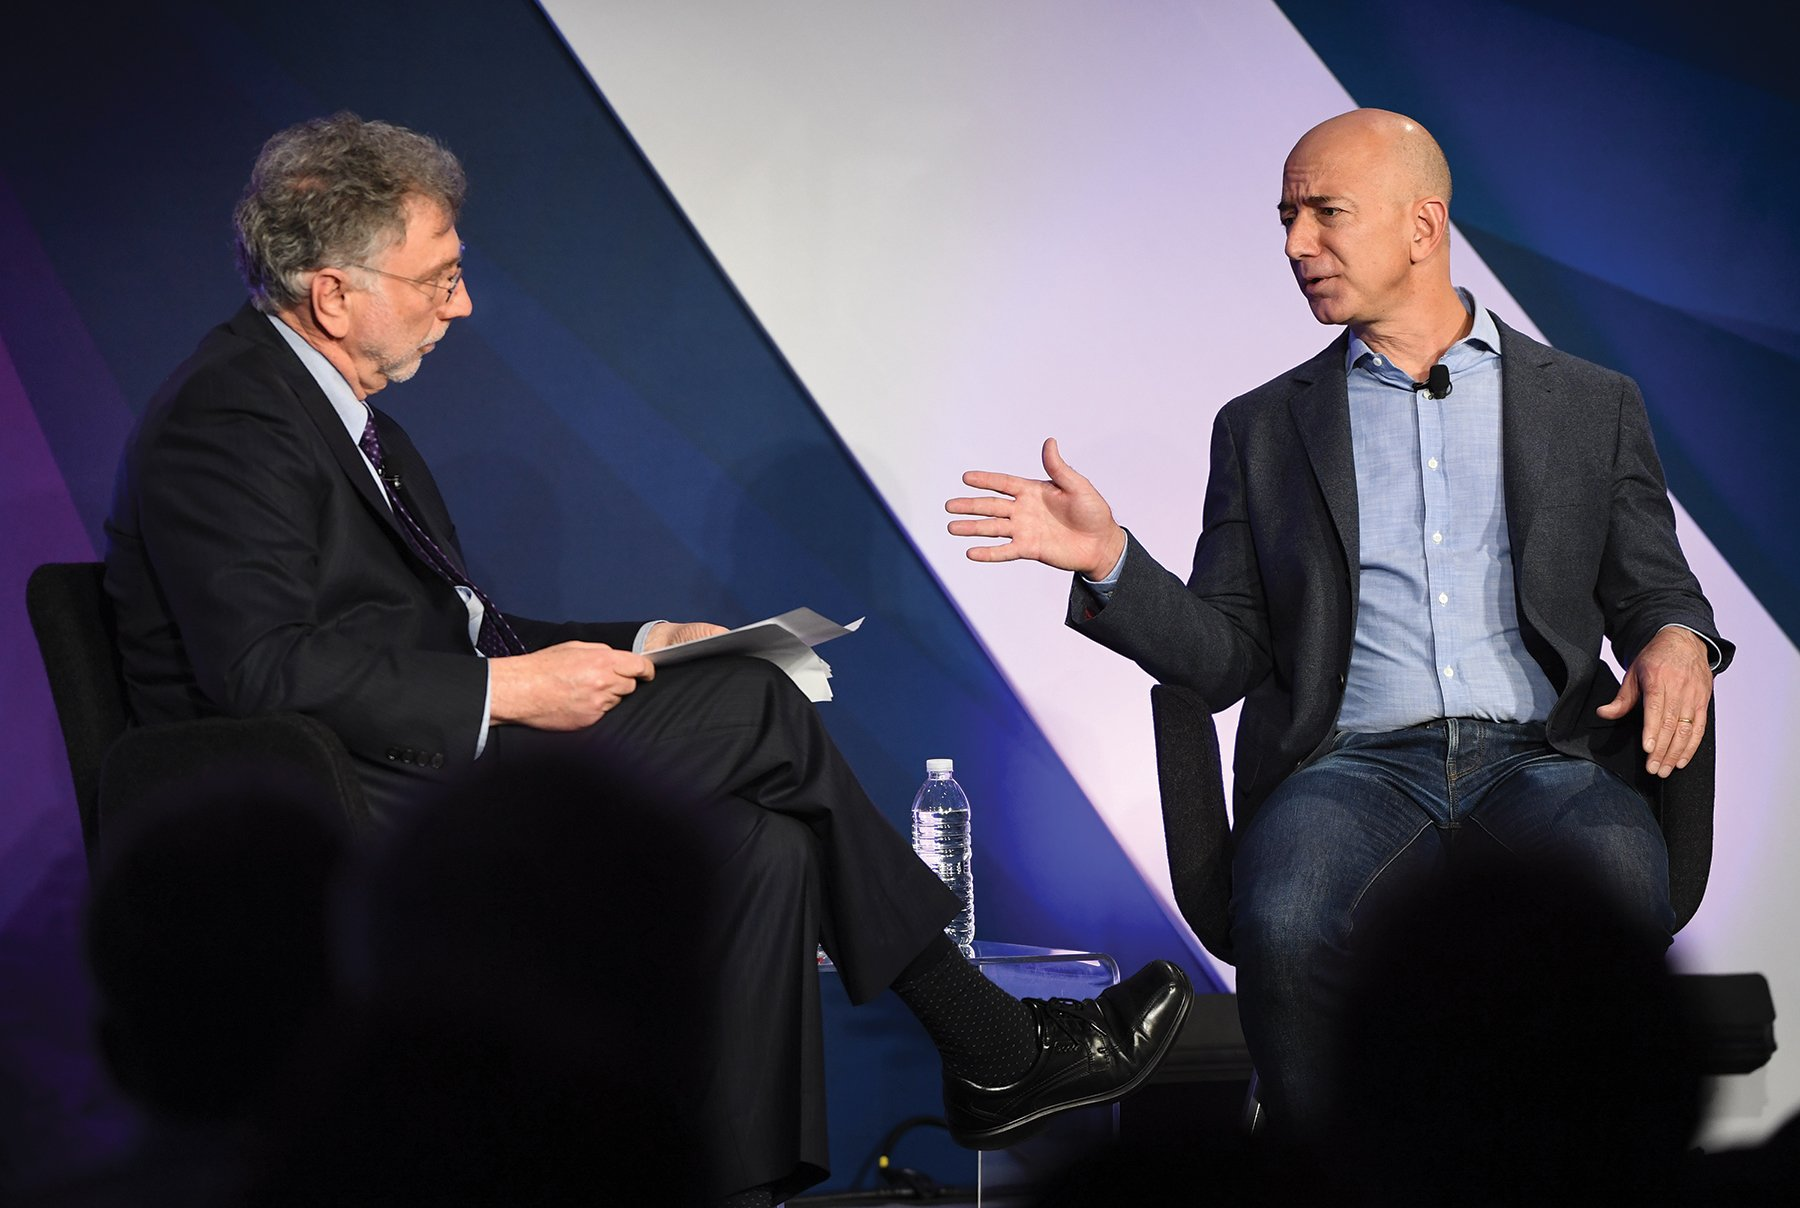 Post editor Marty Baron with owner Jeff Bezos. Photograph by Linda Davidson/Getty Images.